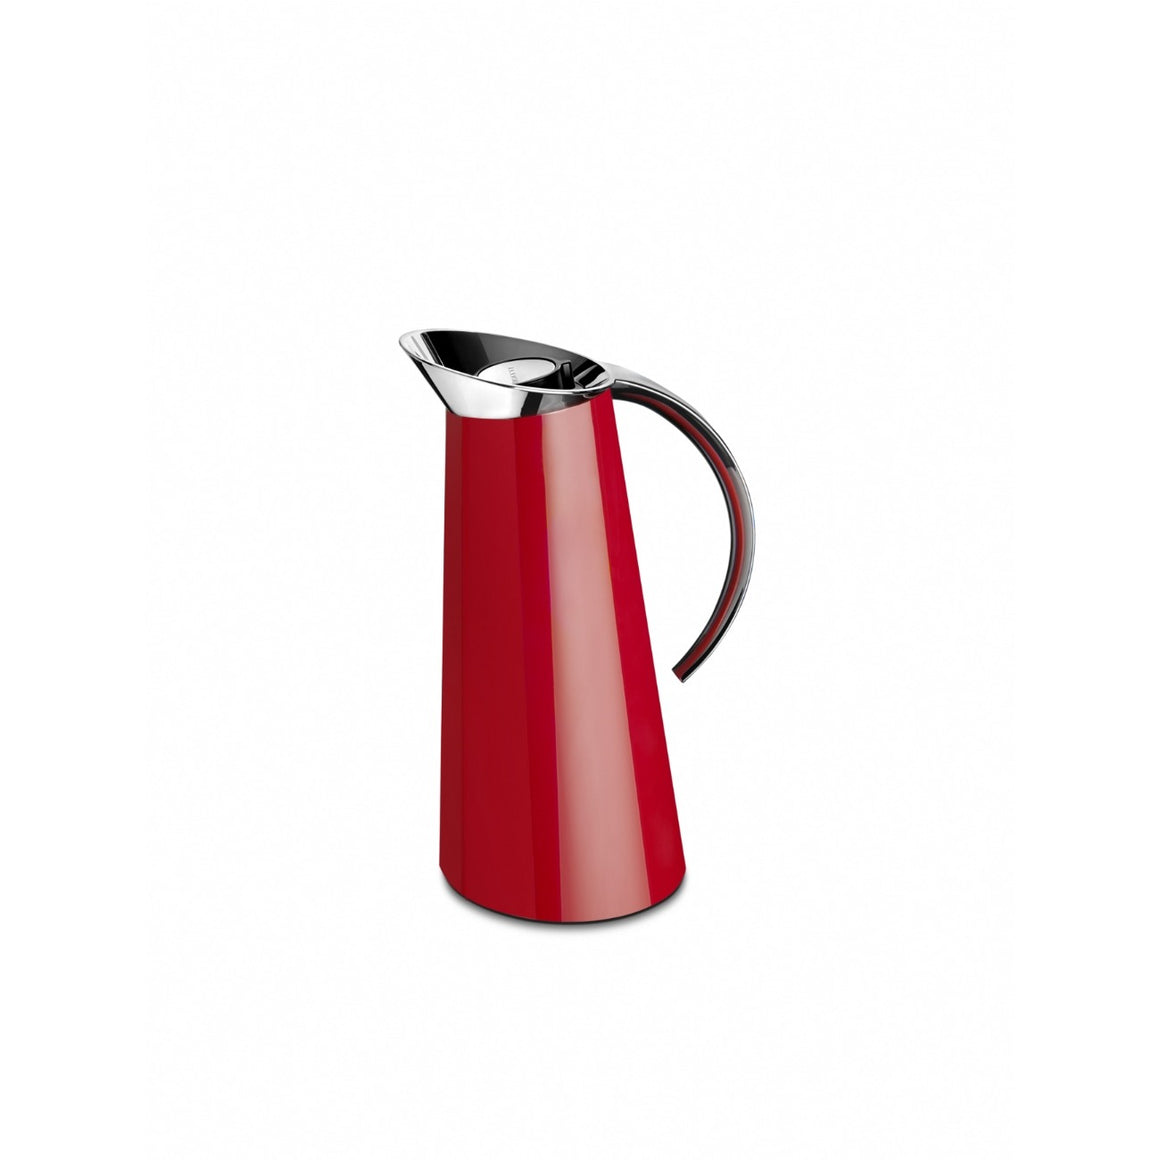 Bugatti - Glamour Thermal Carafe, Red